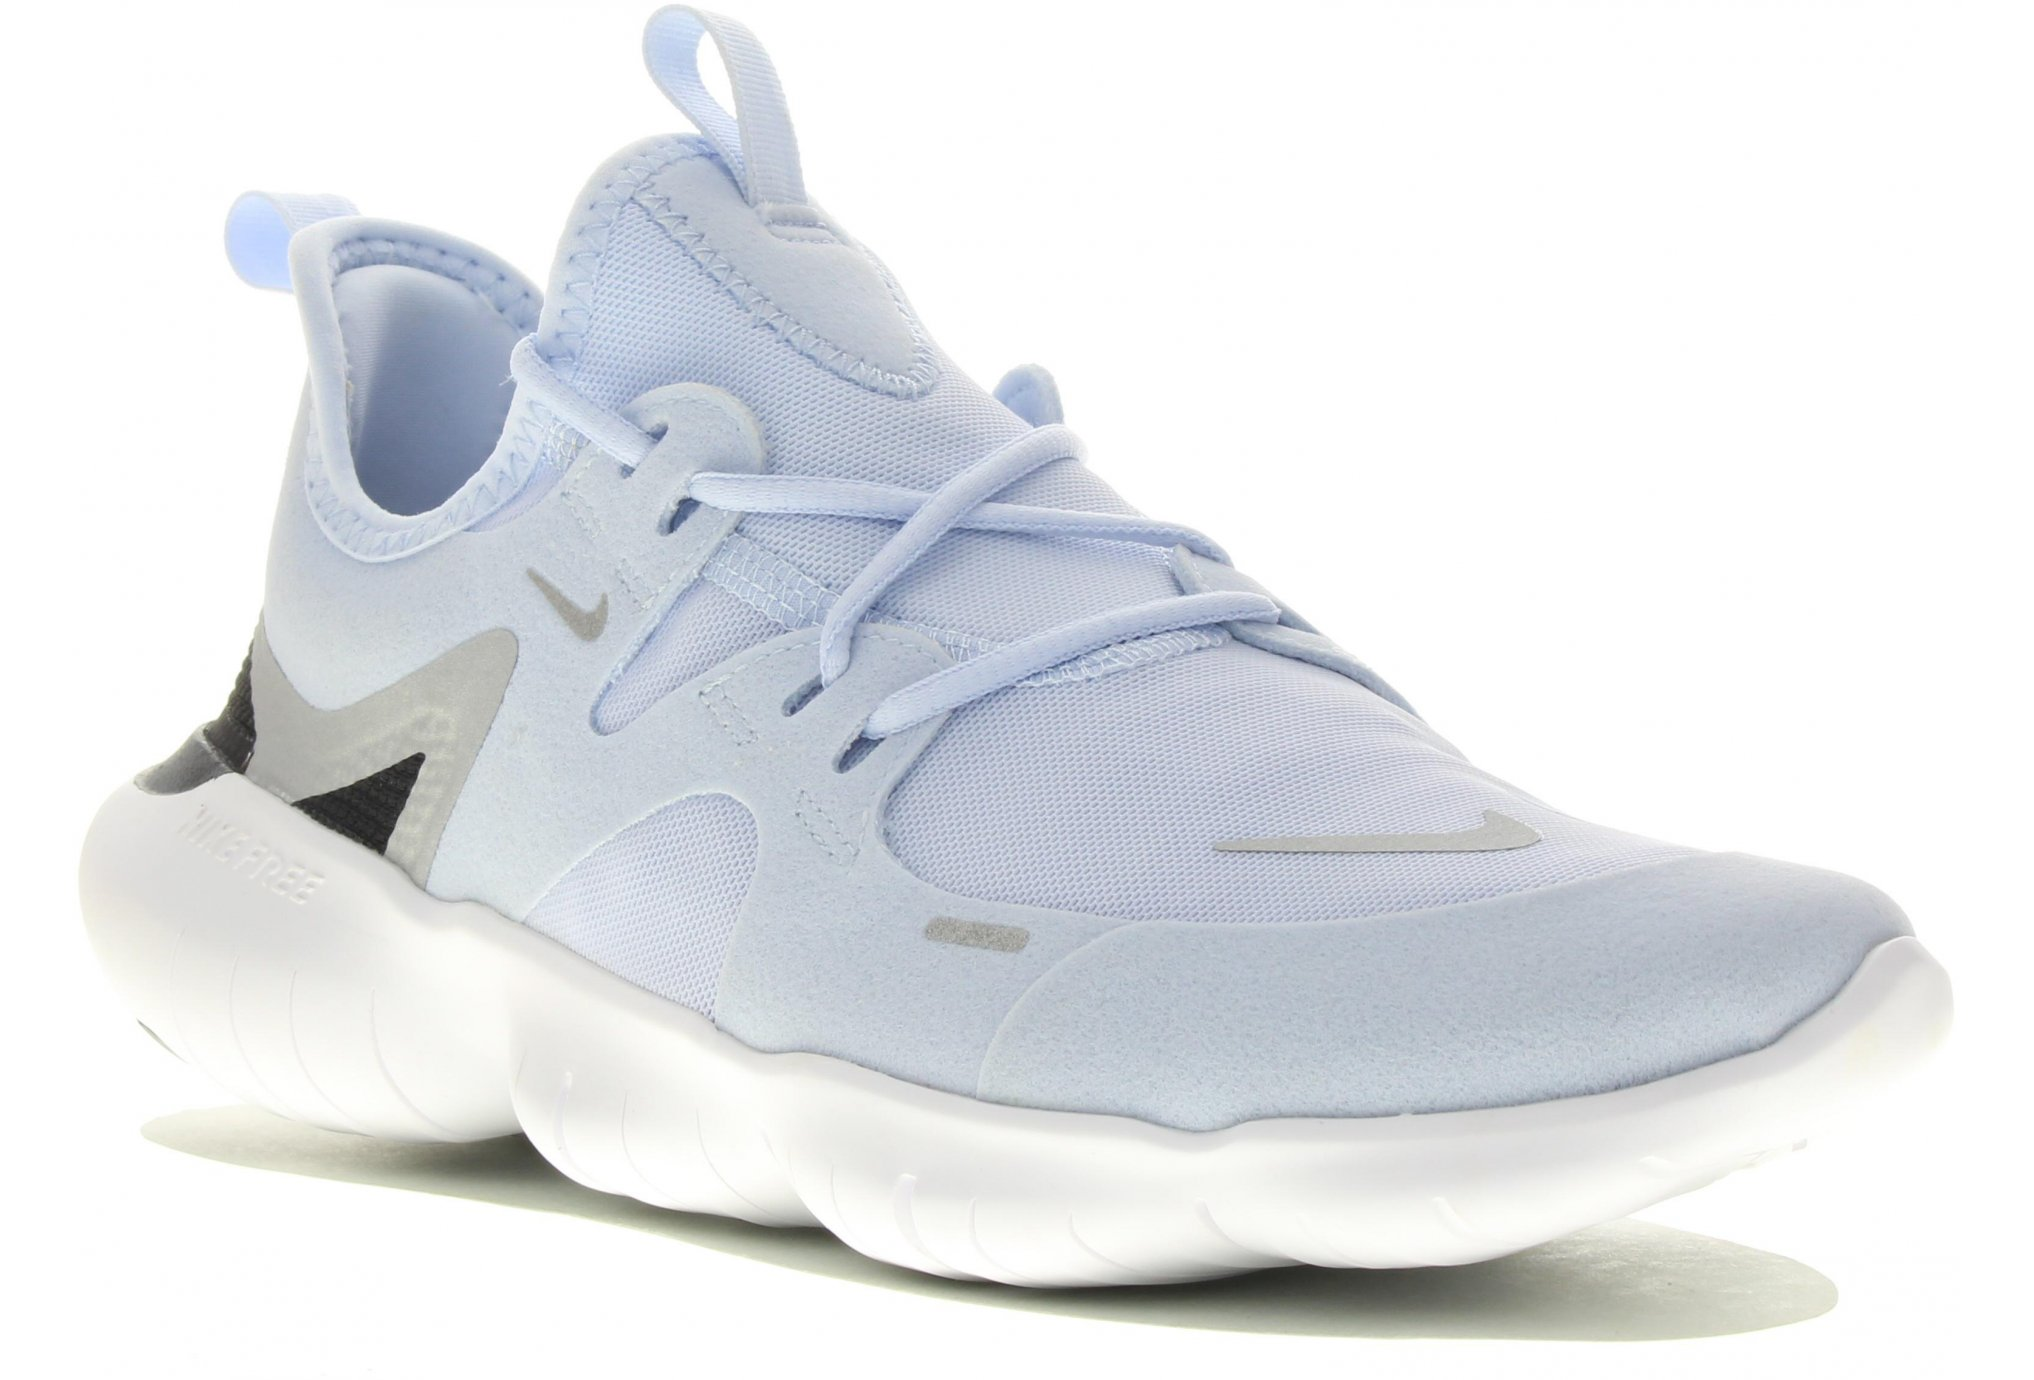 Nike Free RN 5.0 Chaussures running femme